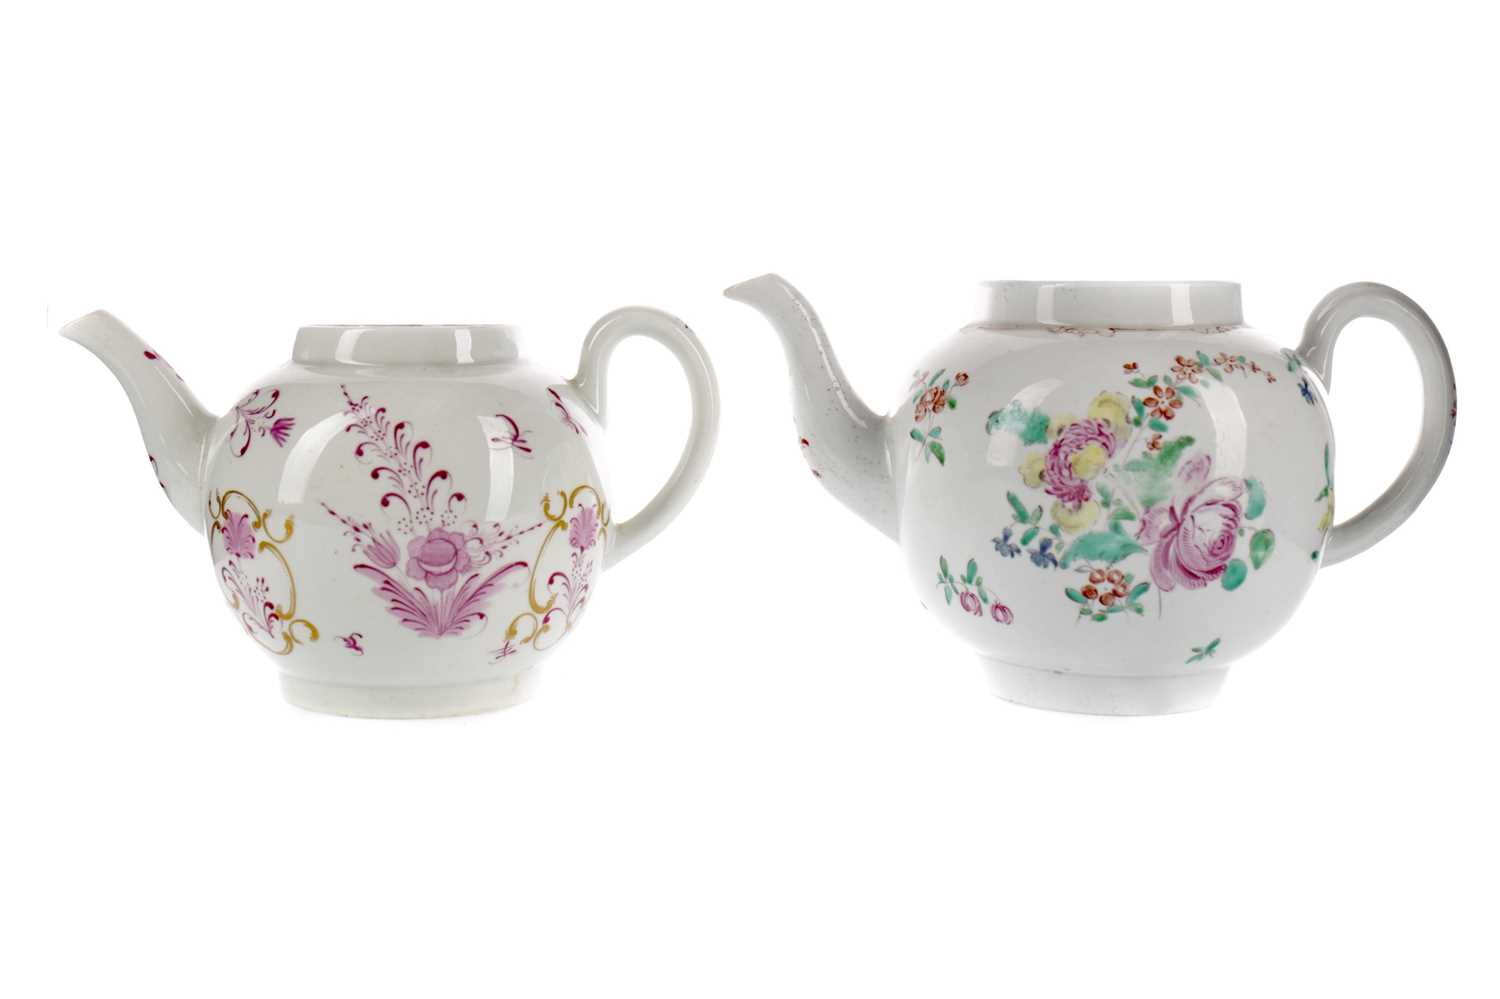 Lot 33 - TWO LATE 18TH CENTURY ENGLISH PORCELAIN TEAPOTS